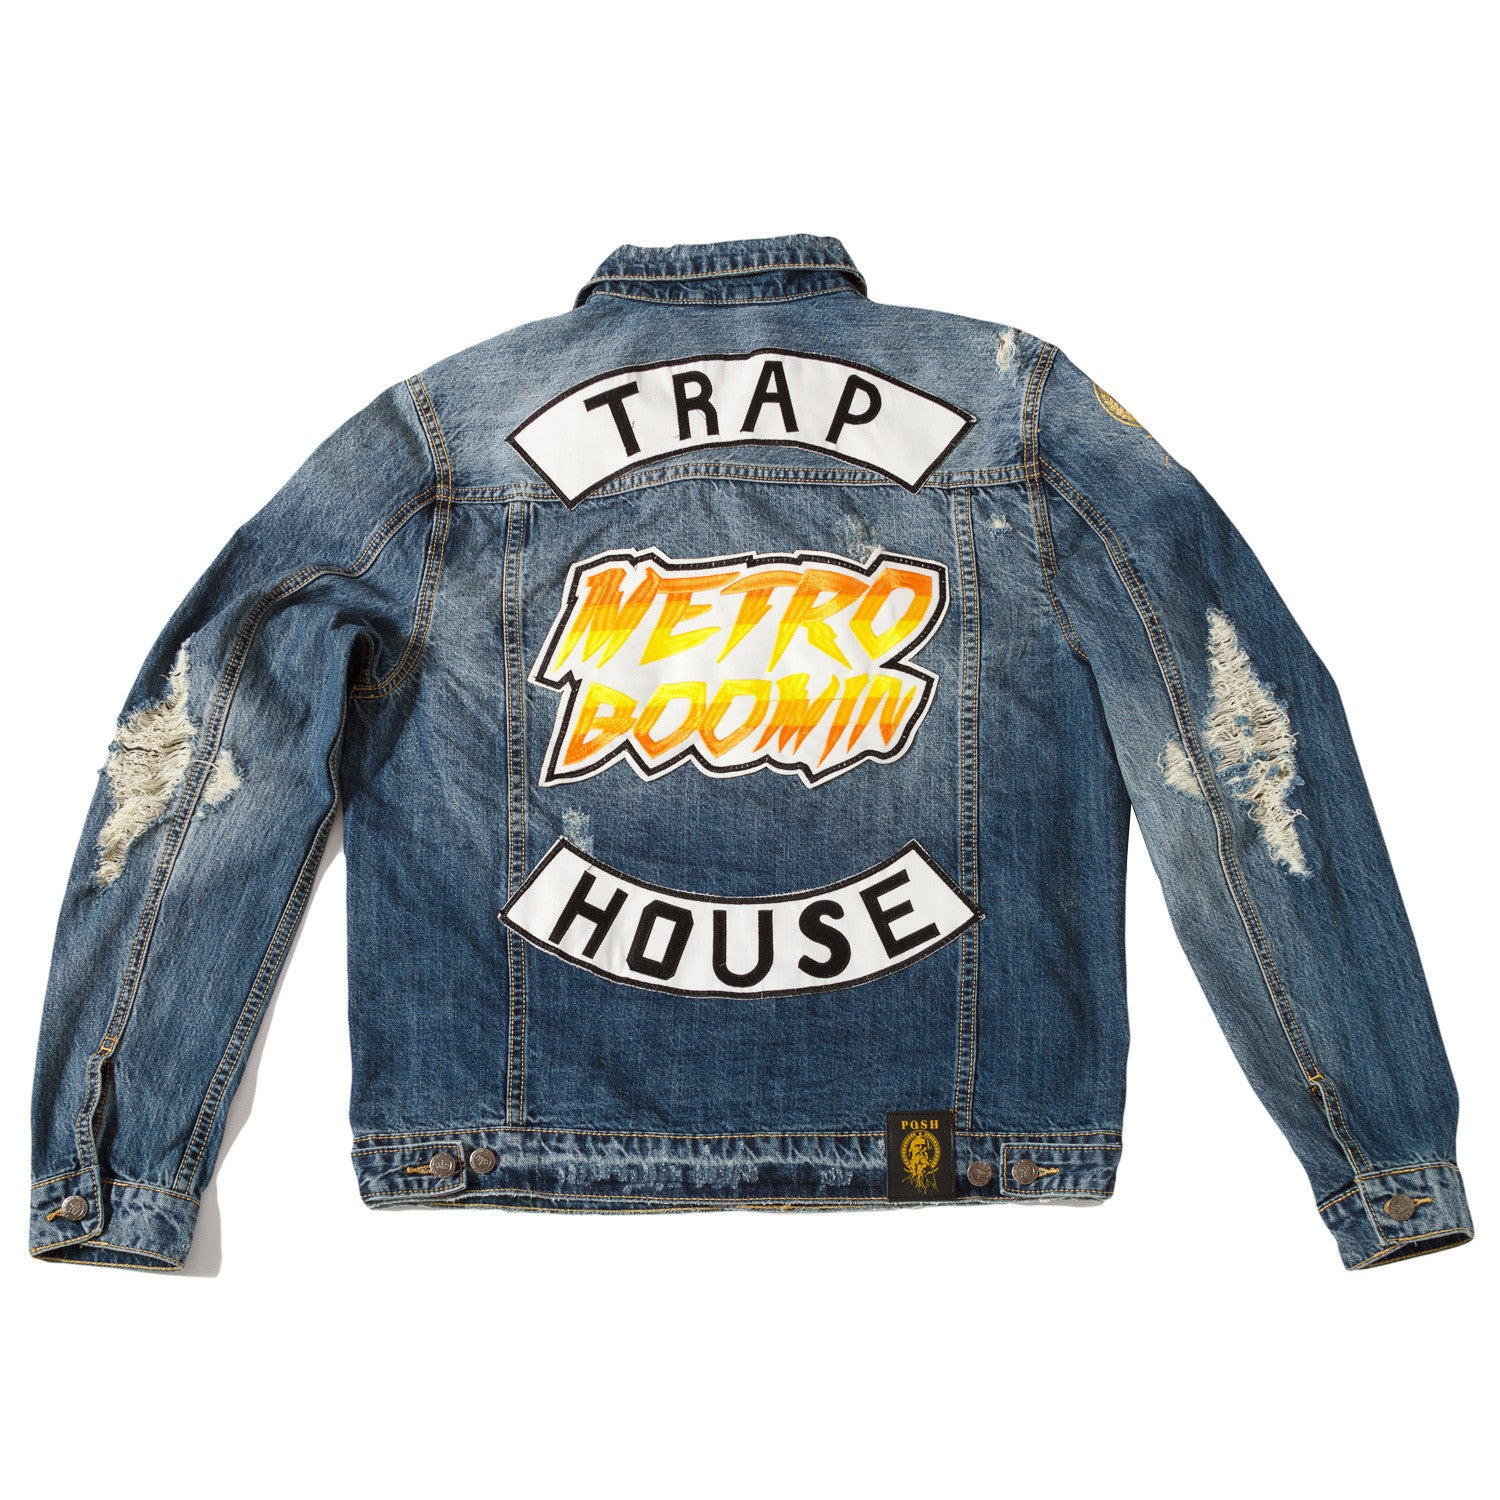 "Posh Denim Distressed Jacket ""Metro Boomin"" - Trends Society"